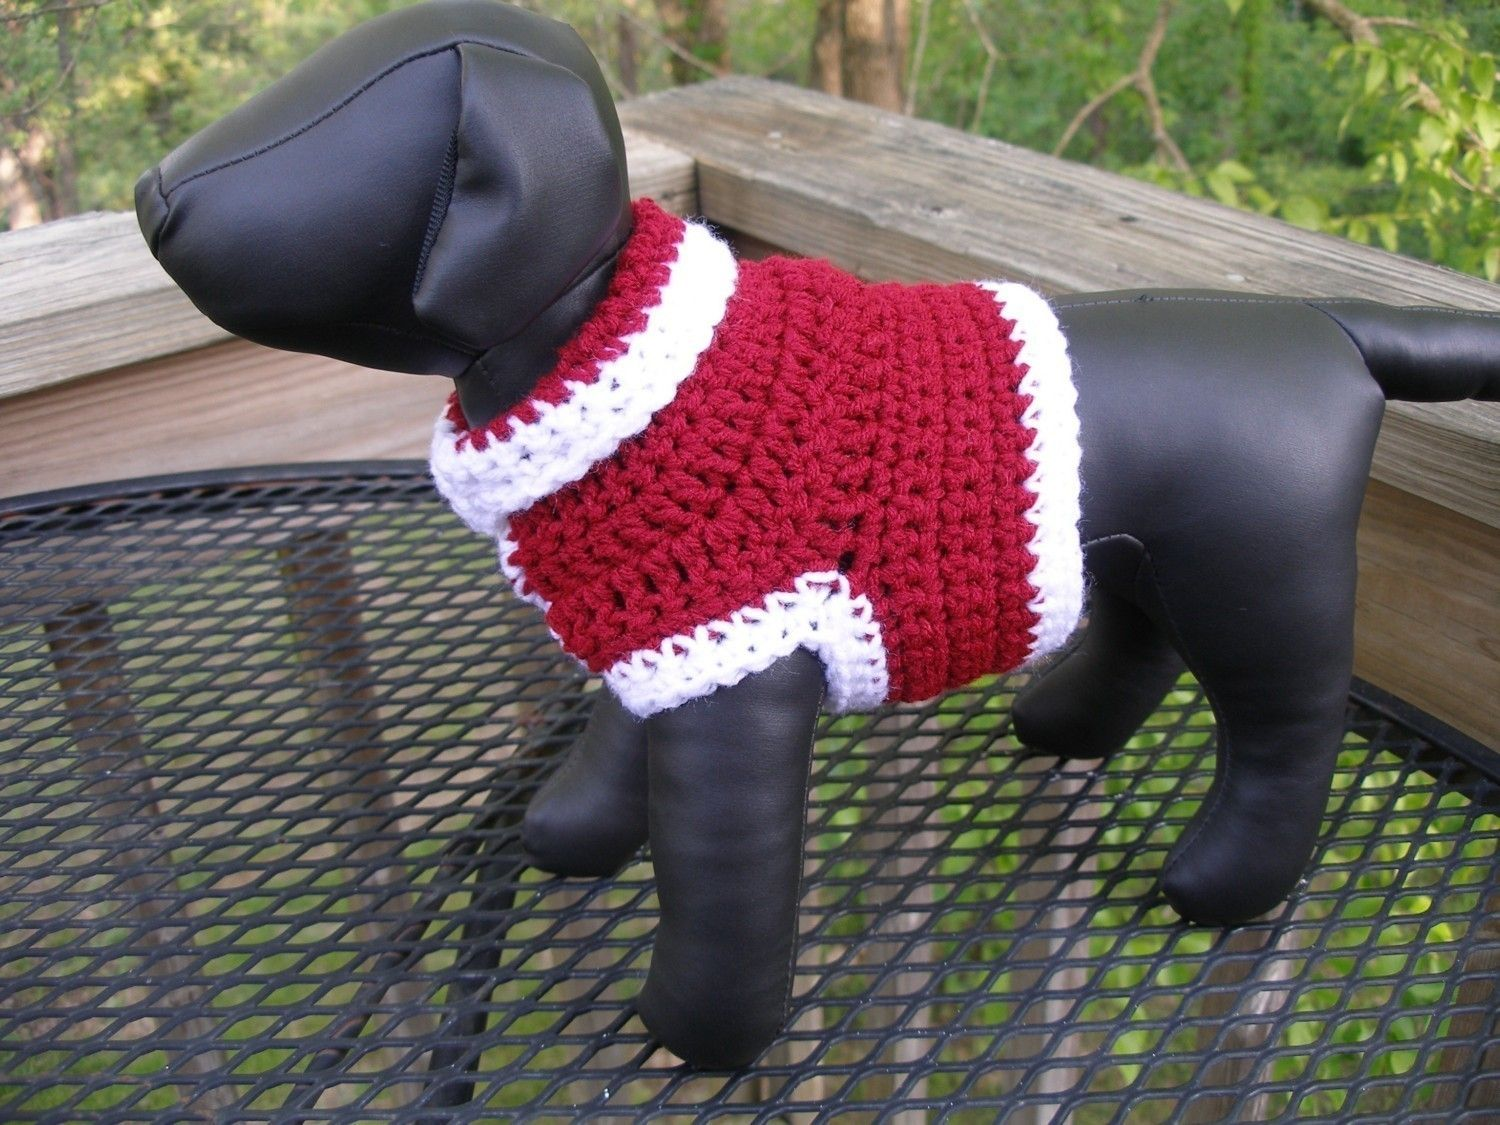 Free Crochet Pattern - Basic Crochet Sweater for Chihuahua from ...